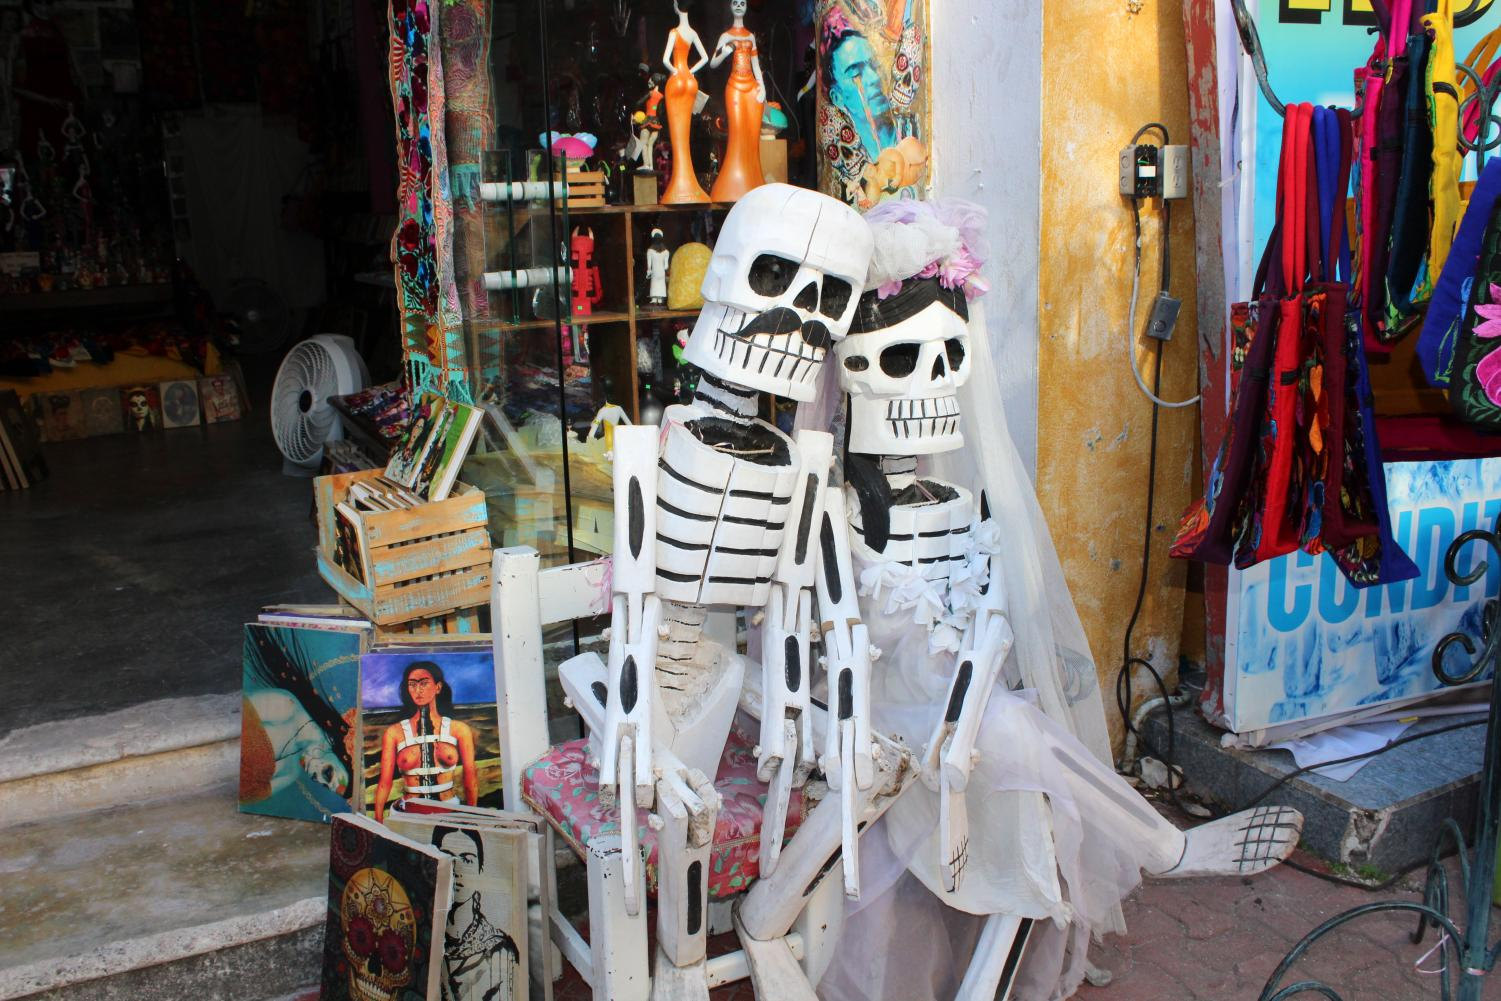 A statue outside of a shop in Playa De Carmen, Mexico surrounded by Frida Kahlo artwork for sale.